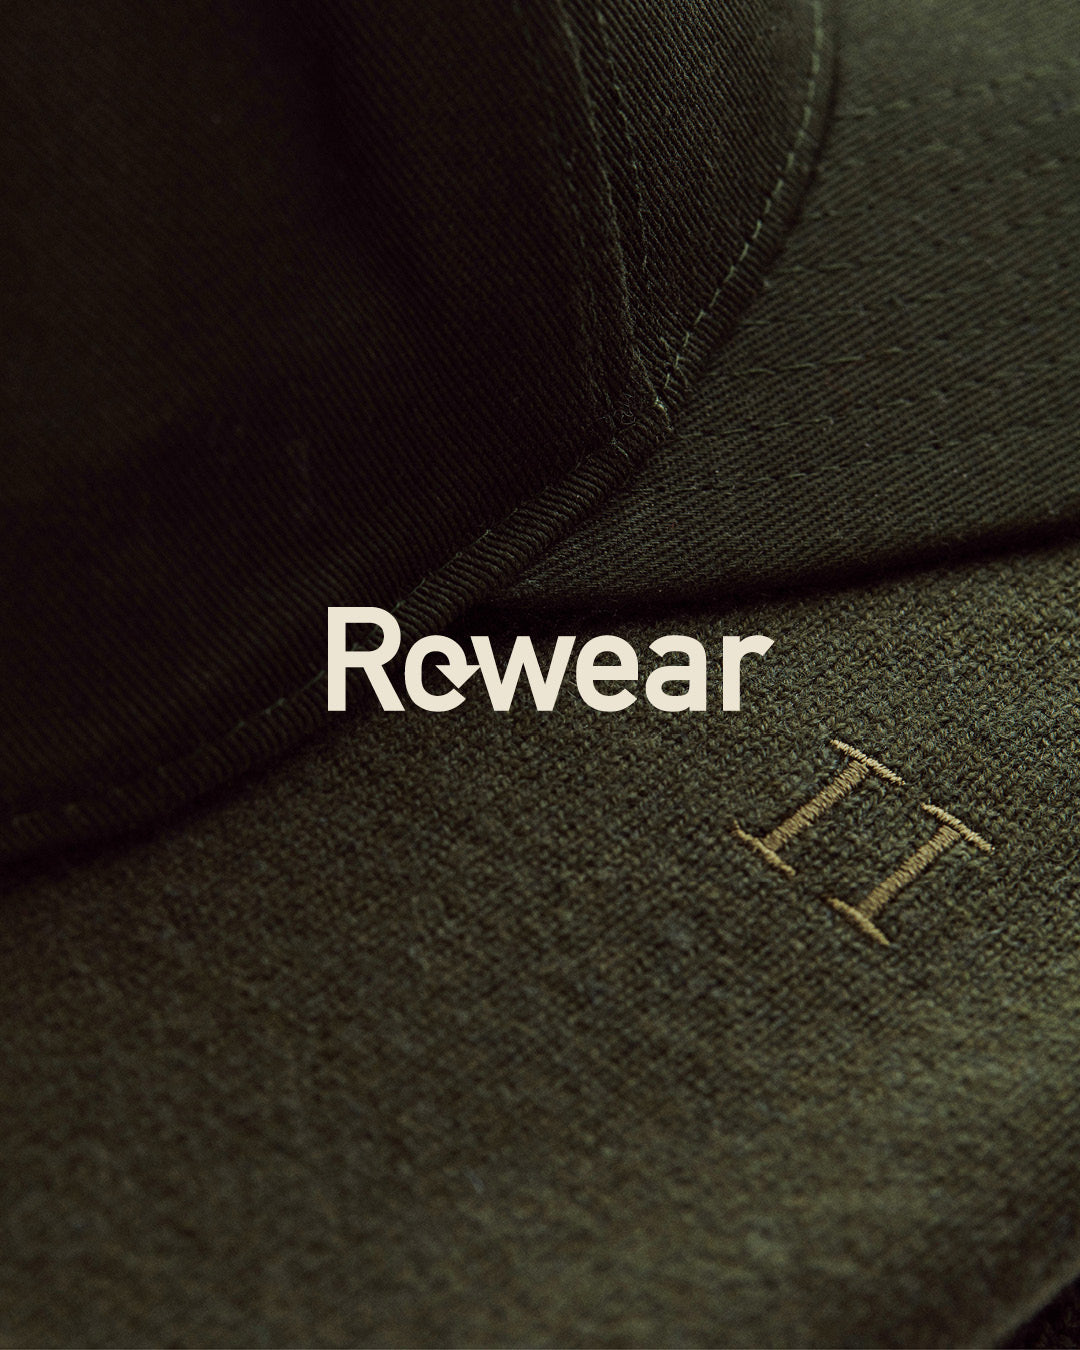 Introduction to Rewear - Launching exclusively in Denmark